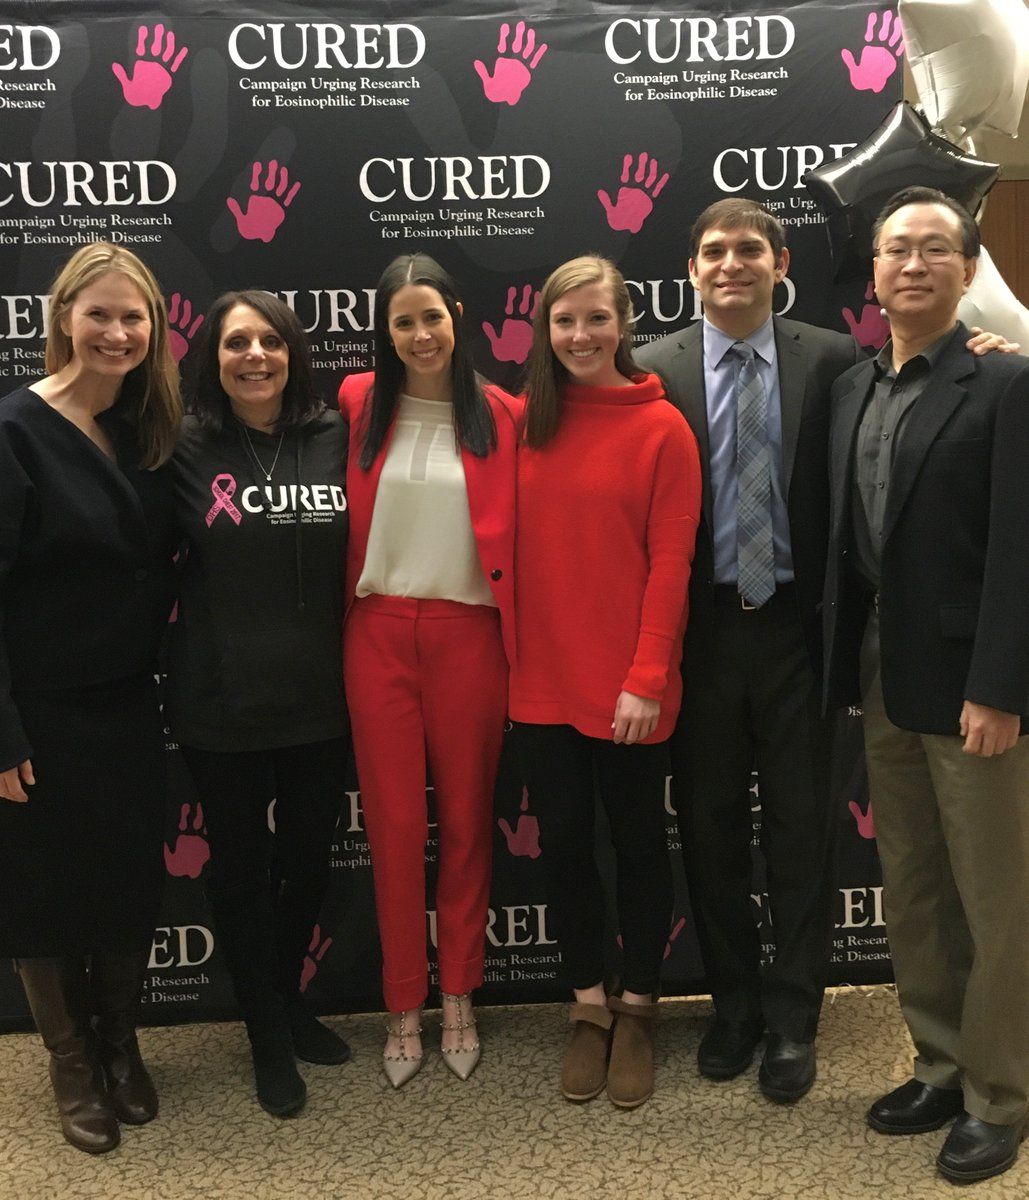 Special thanks to all those who attended @curedfoundations recent fundraising event! CURED raised more than $100,000 all in support of @LurieChildrens Dr. Weschler's EoE research! #EoE #research #all4your1